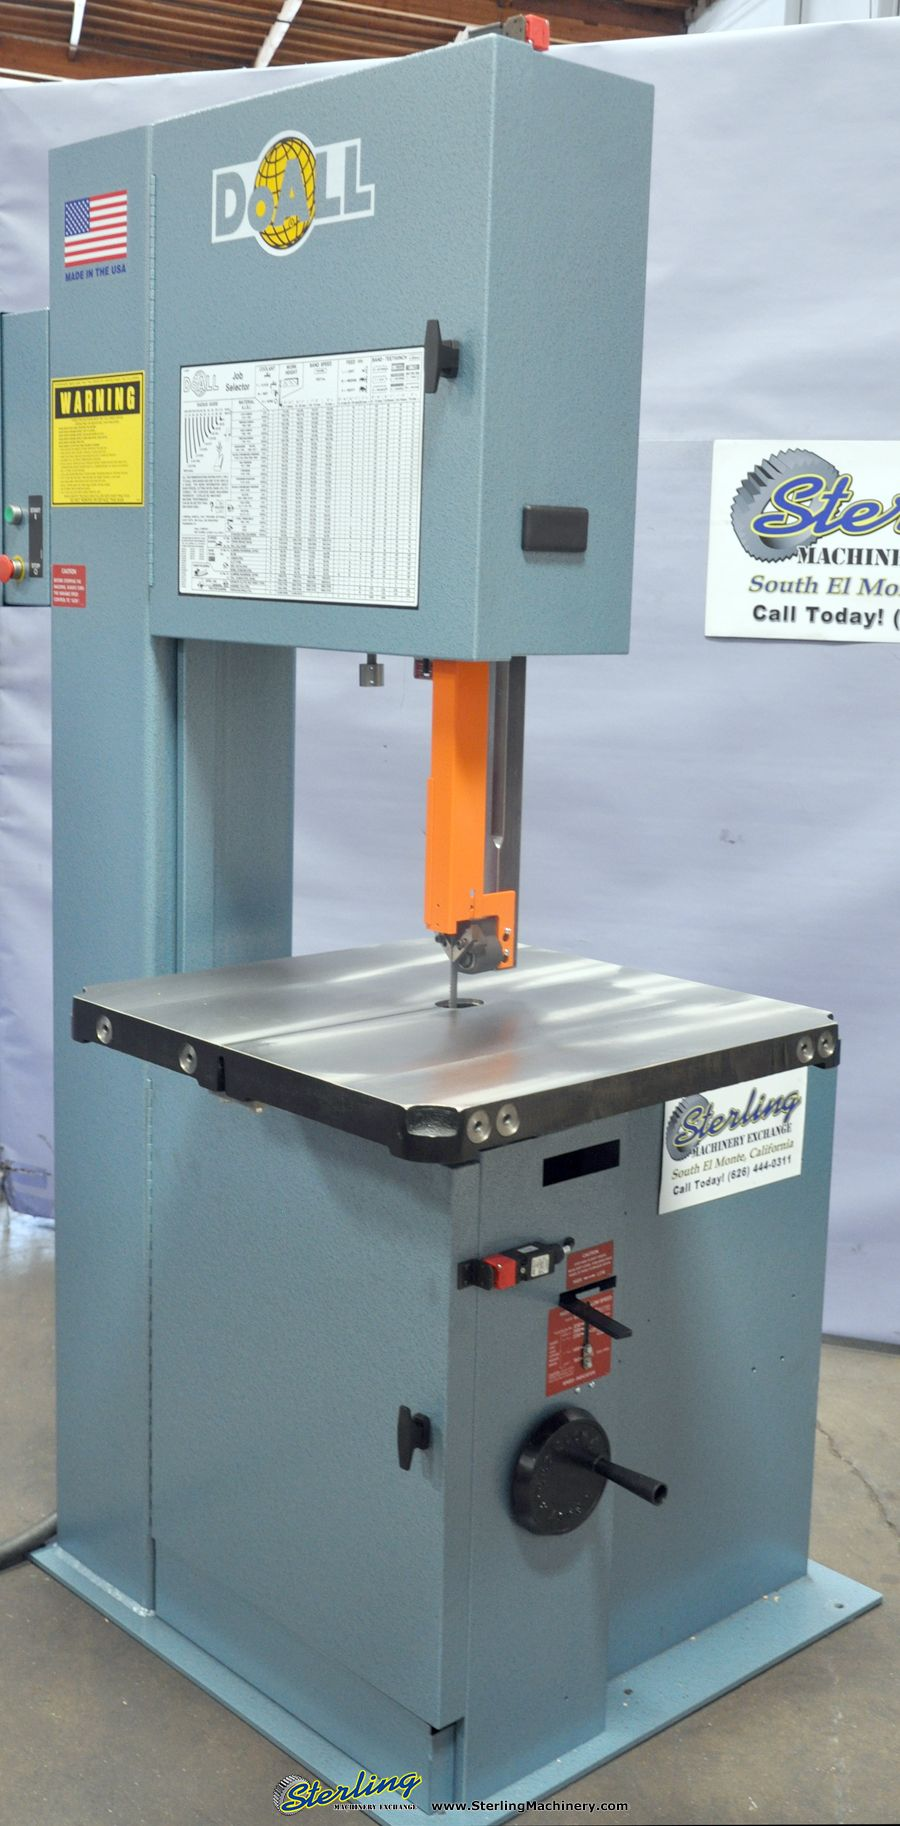 small resolution of 20 brand new doall vertical contour bandsaw mdl 2013 v high low transmission made in the u s a sm2013v